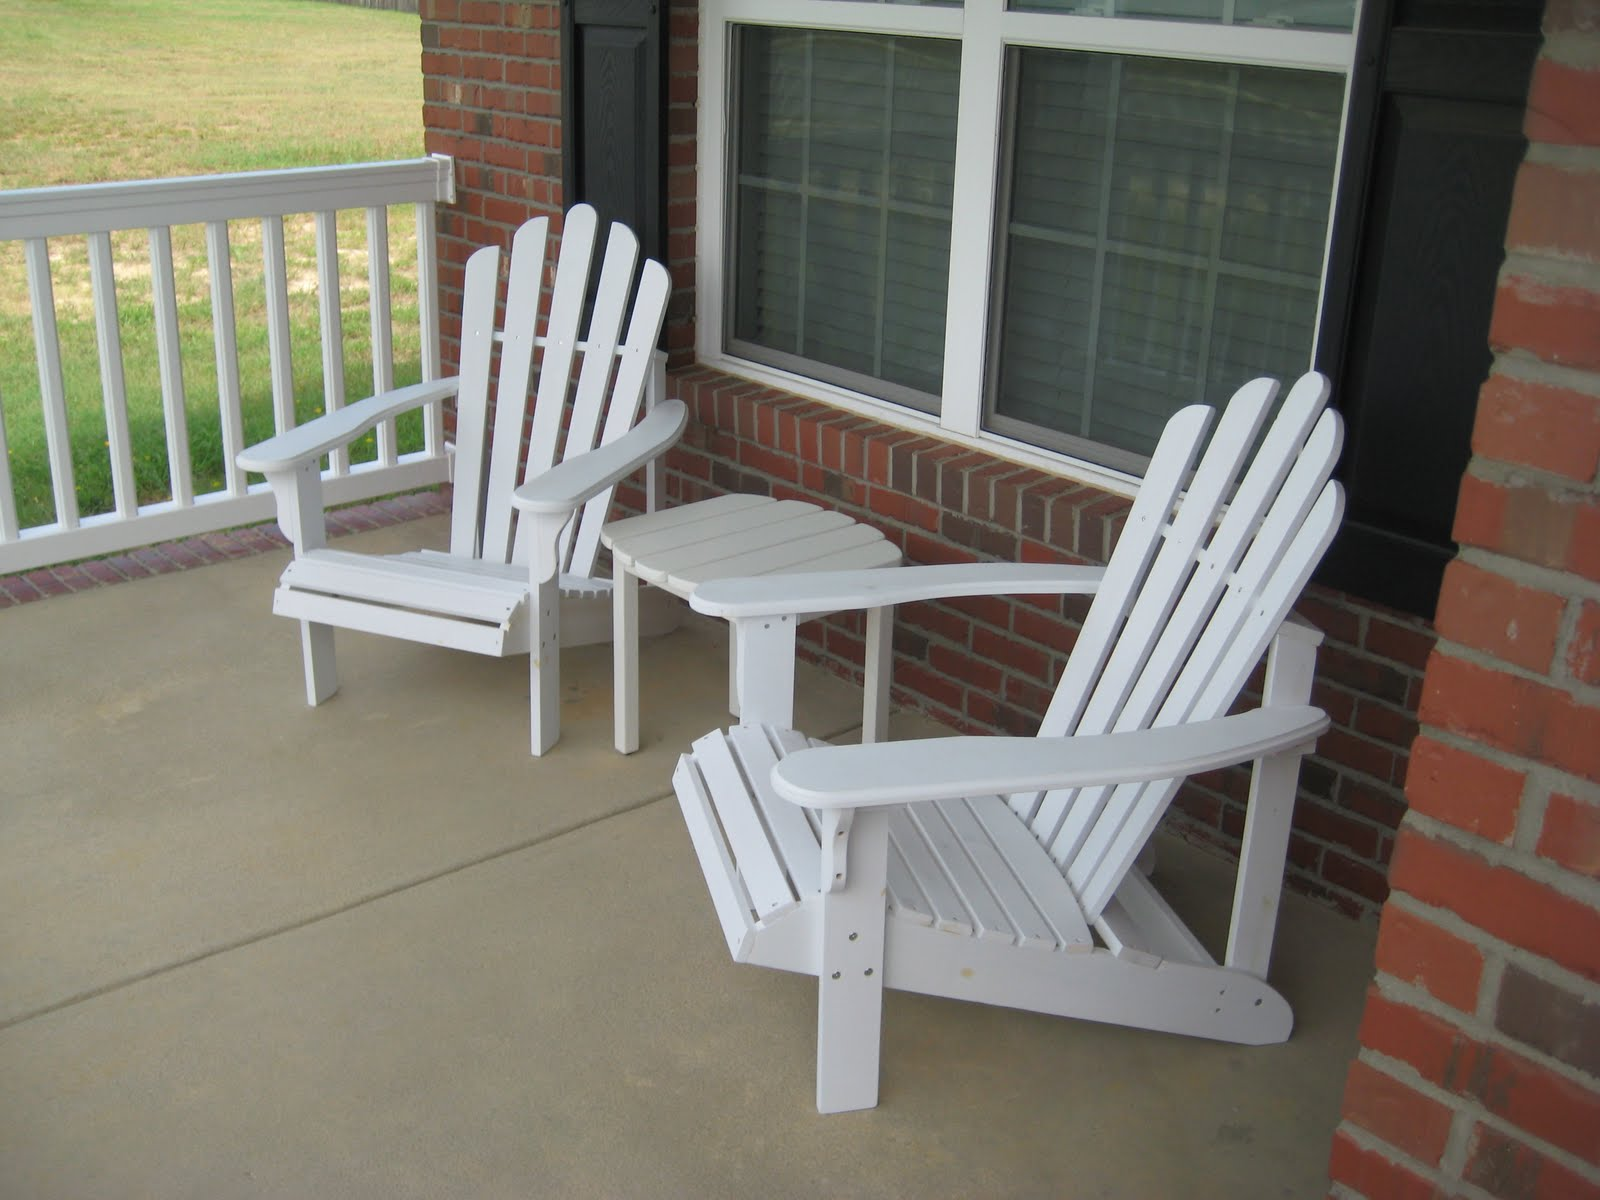 Family of 3 new front porch furniture for Front deck furniture ideas